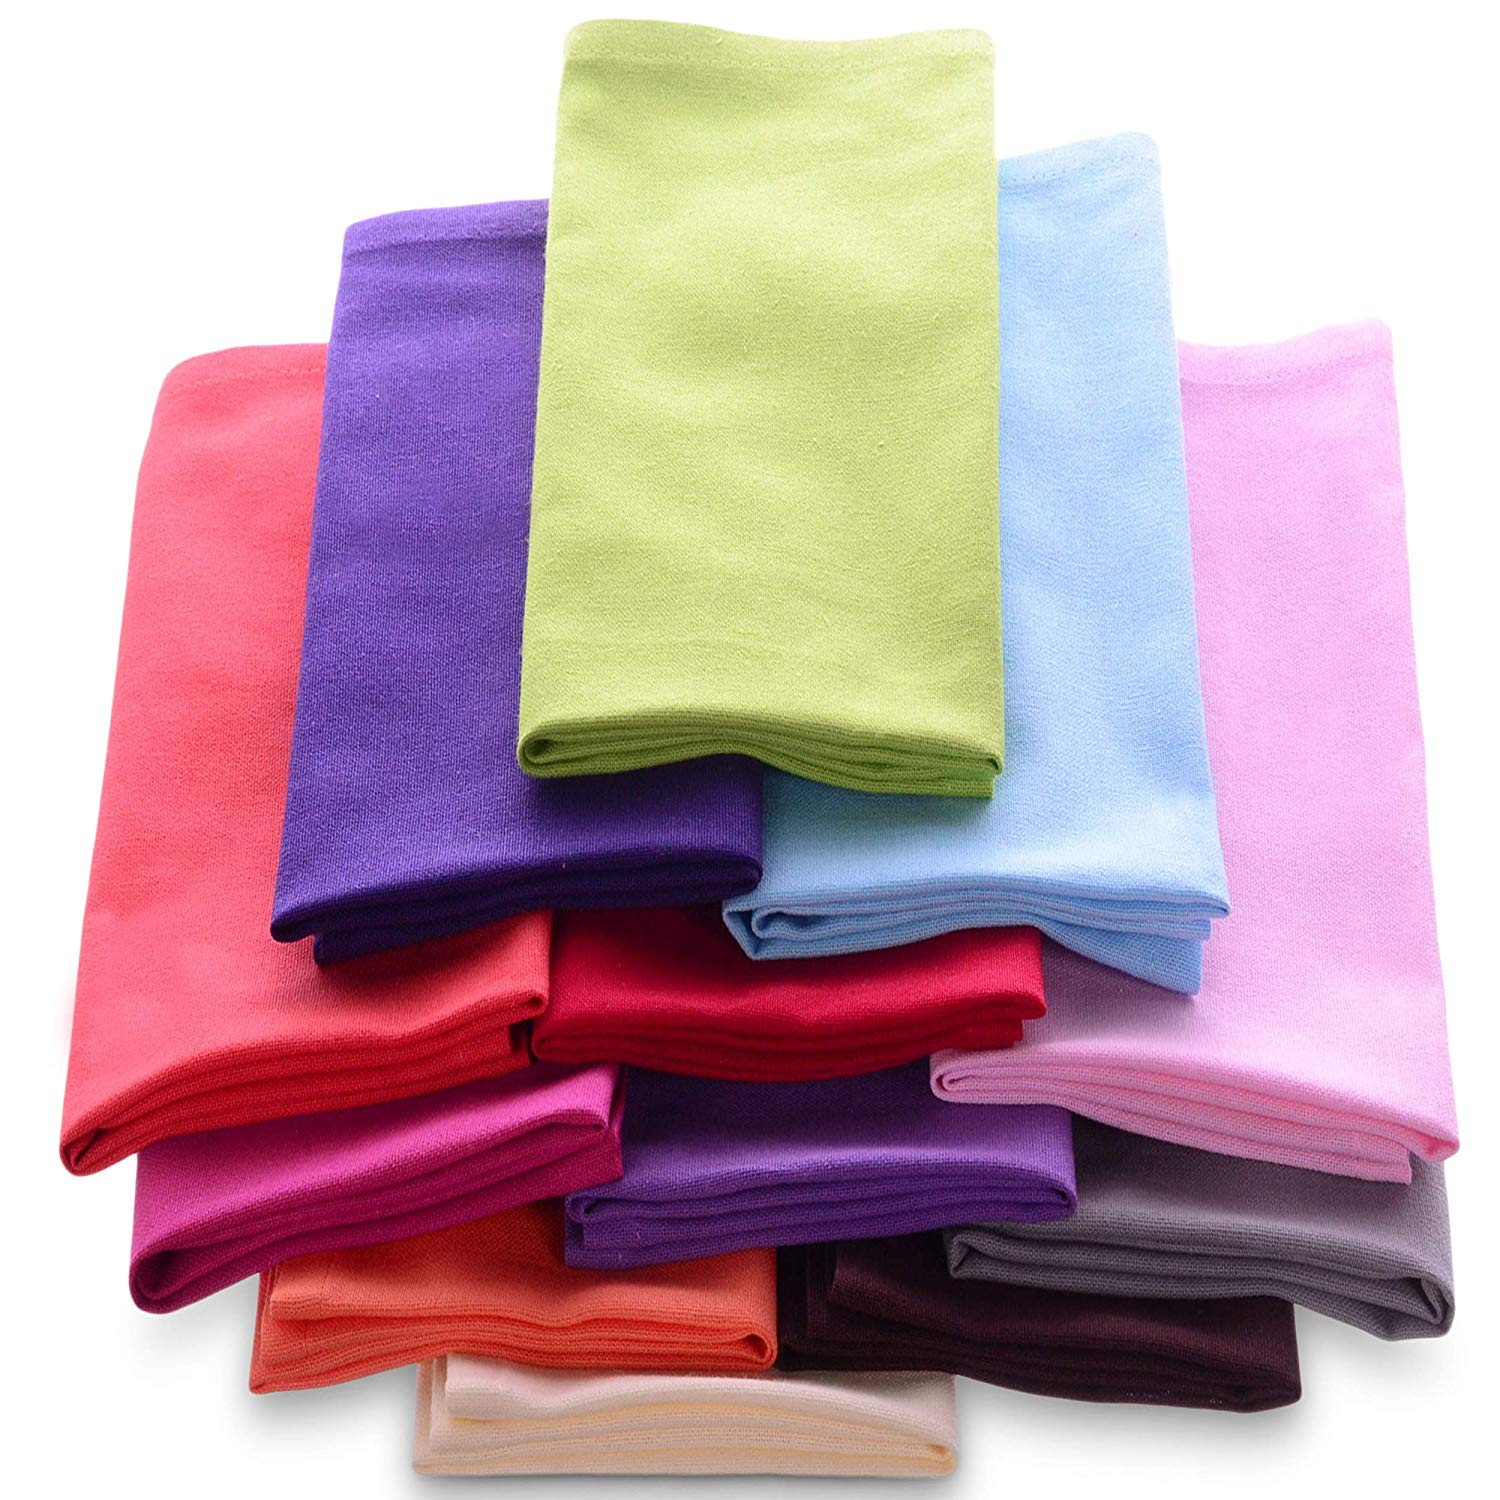 Cotton Dinner Napkins Cloth 20 x 20 100% Natural Bulk Linens for Dinner, Events, Weddings - Magenta, Lime, Ming Red, Stone, Black, Lavender, Grape, Orange, Teal, Navy, Mustard & Leaf, Set of 12